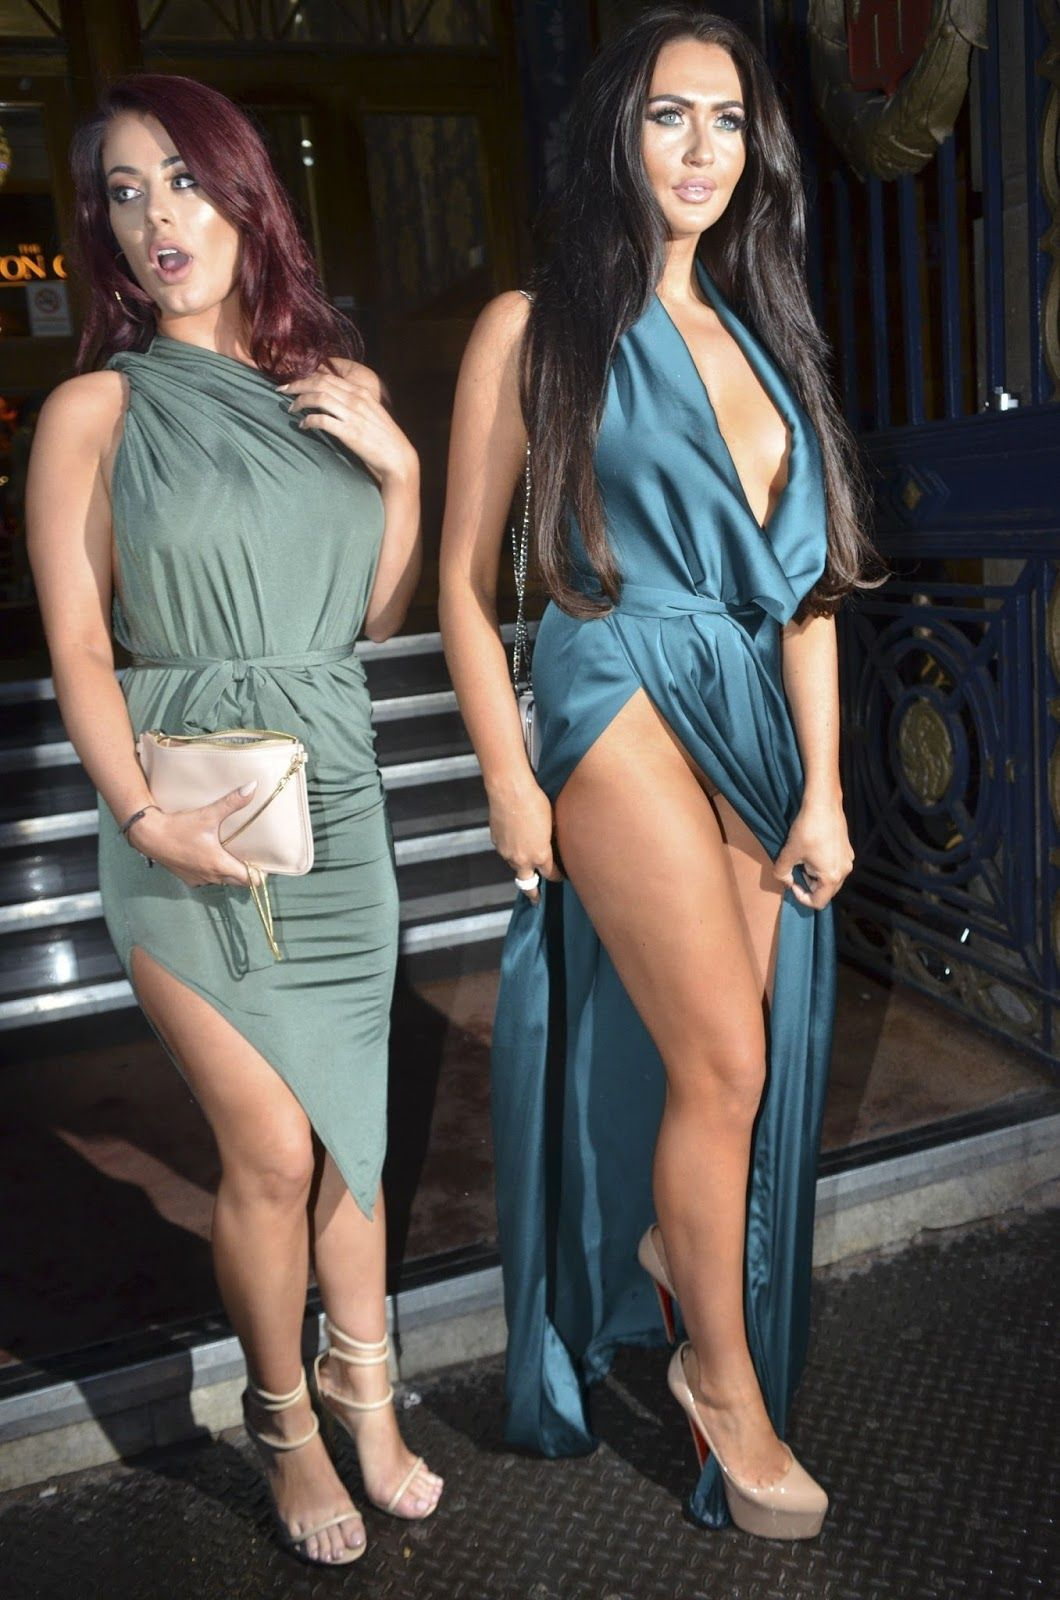 charlotte dawson (in the right), upskirt pussy no panties!. | black